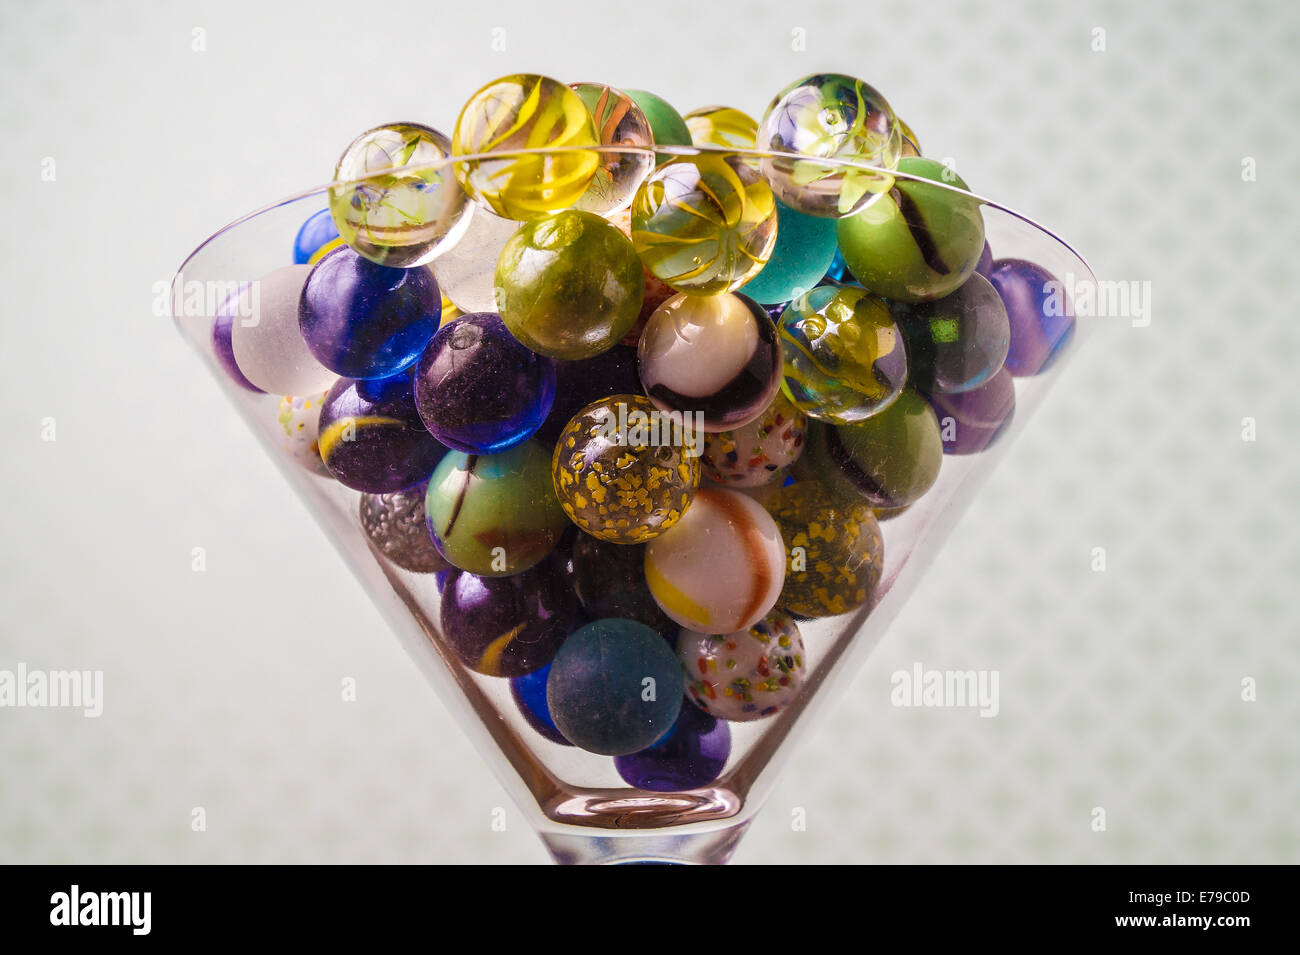 Colorful marbles served in a bowl, ready for playing - Stock Image